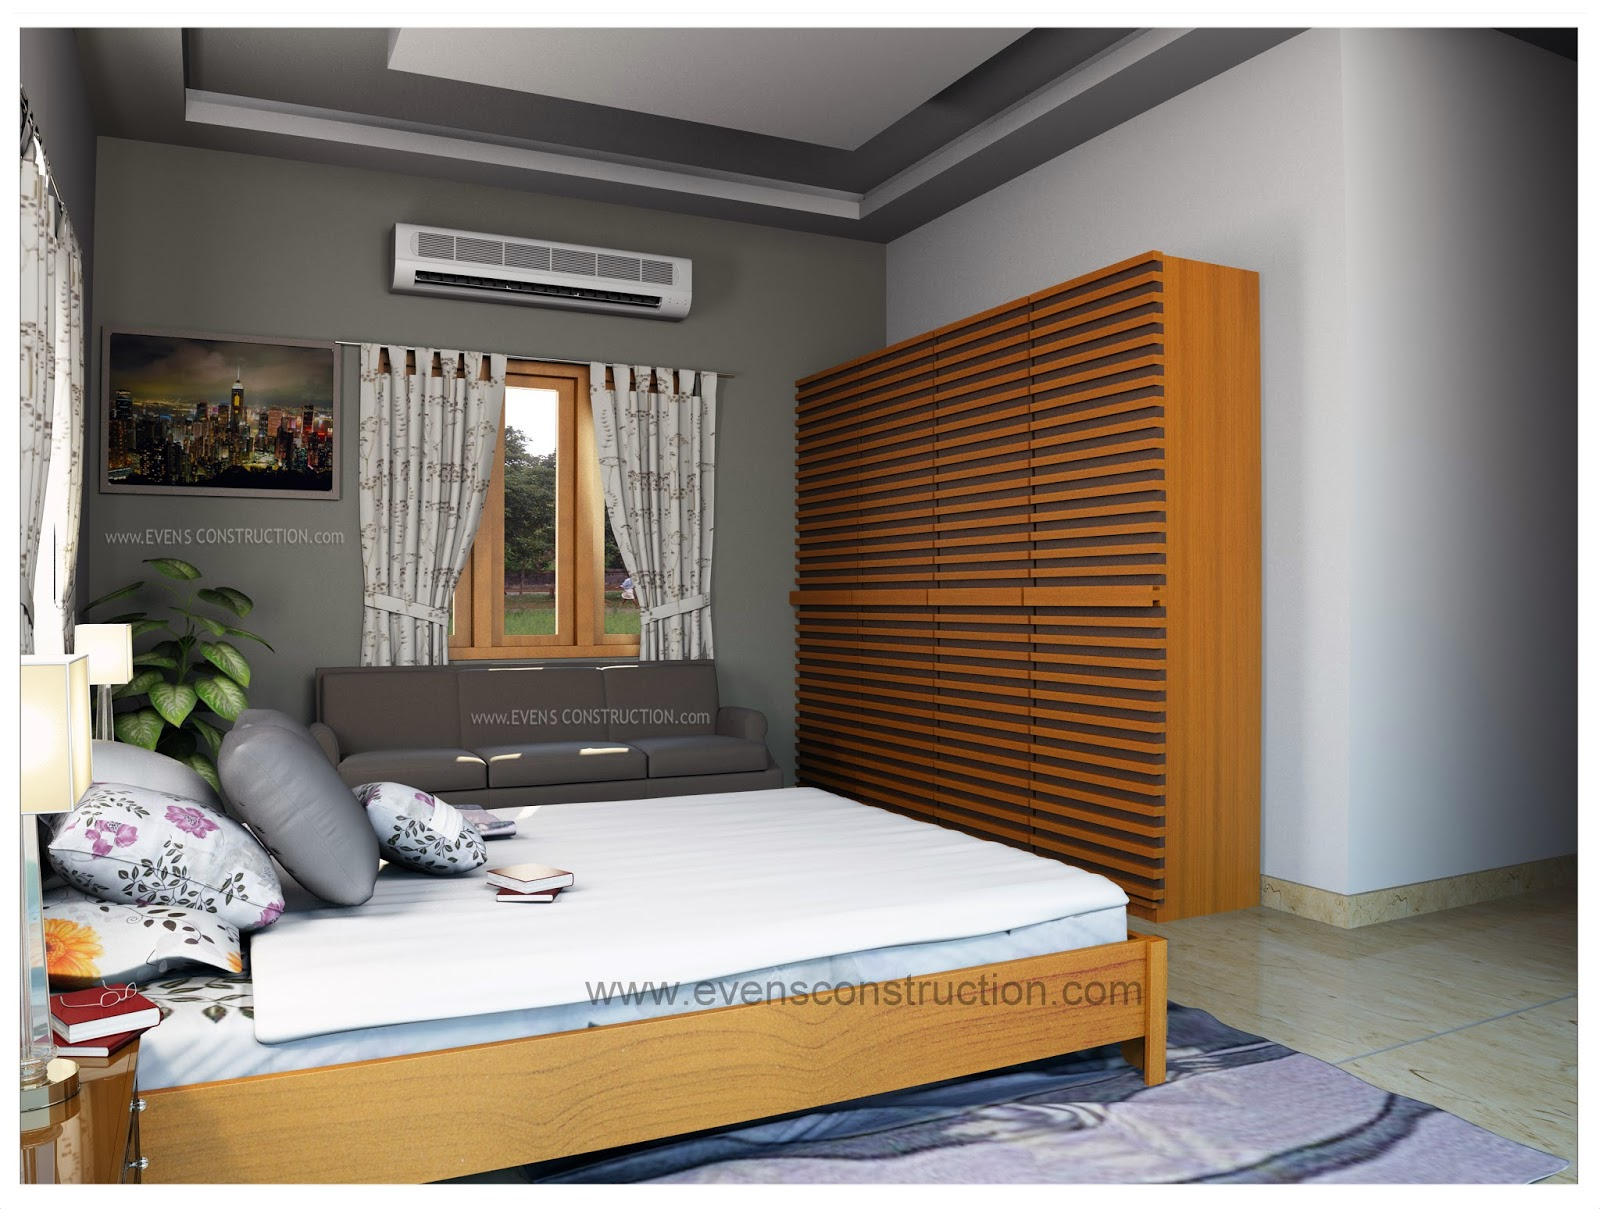 Evens construction pvt ltd simple and cute bedroom interior for Cute simple bedrooms